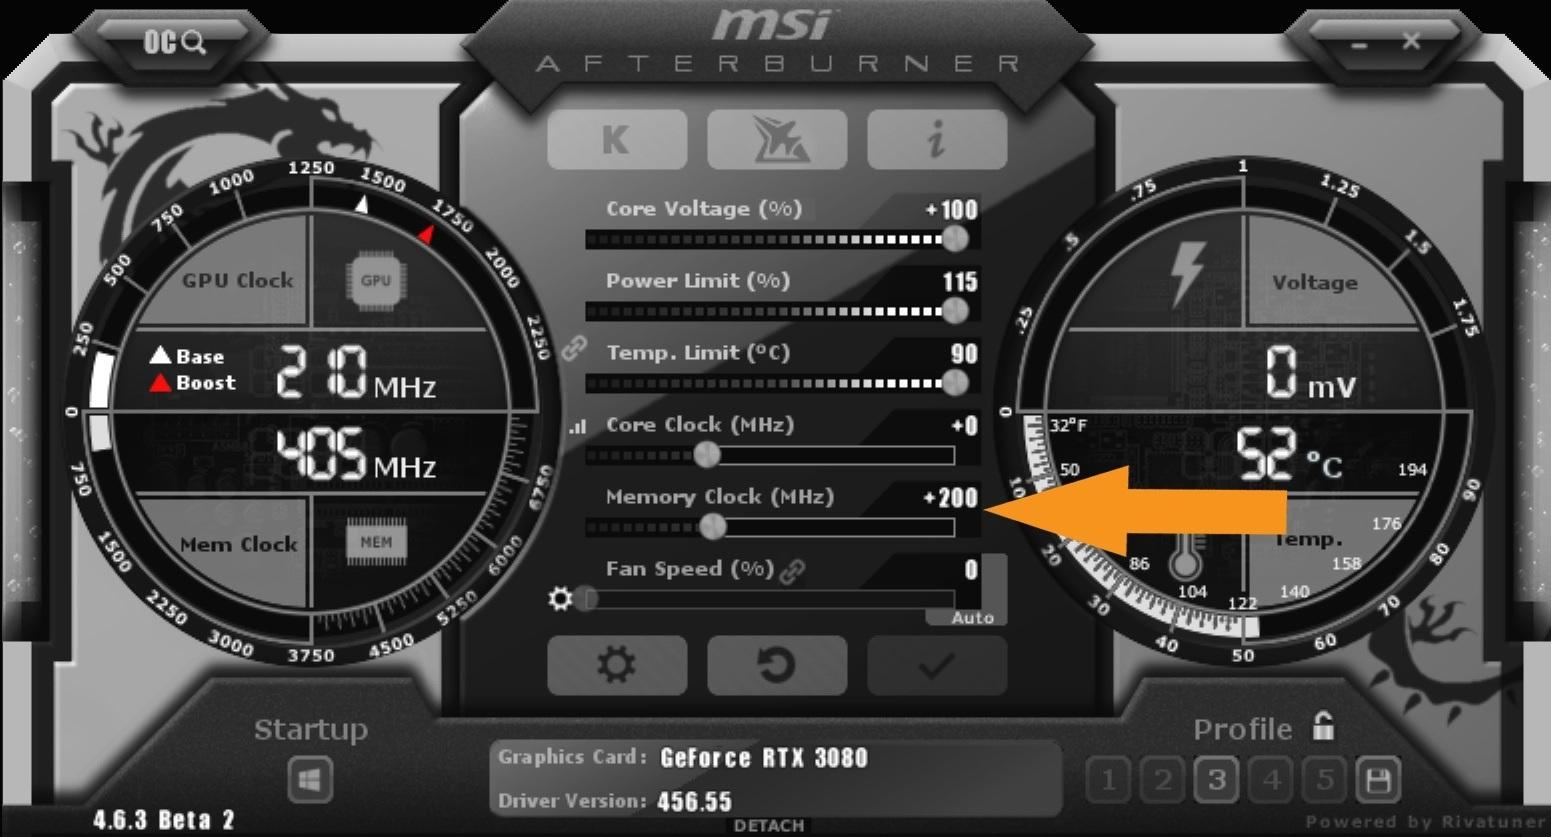 Nvidia Geforce Rtx 3080 Guide Overclocking Msi After Burner Memory Clock